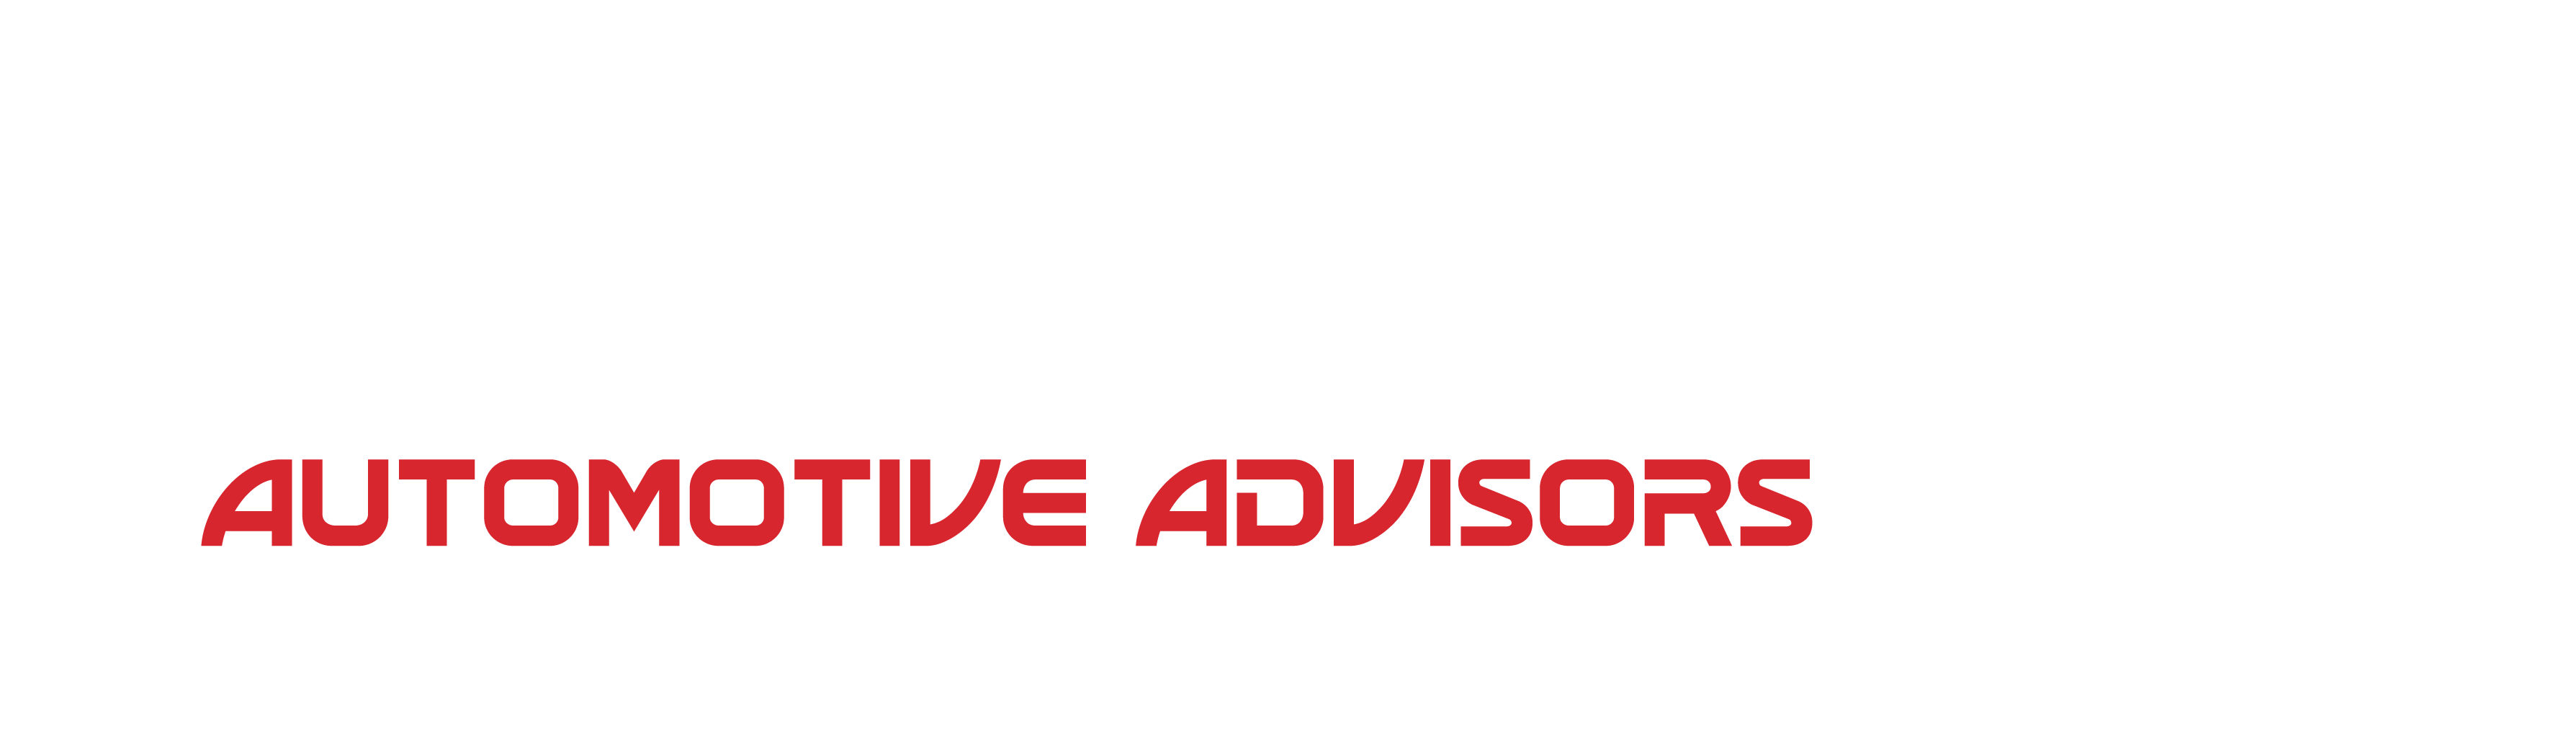 Don Graff Automotive